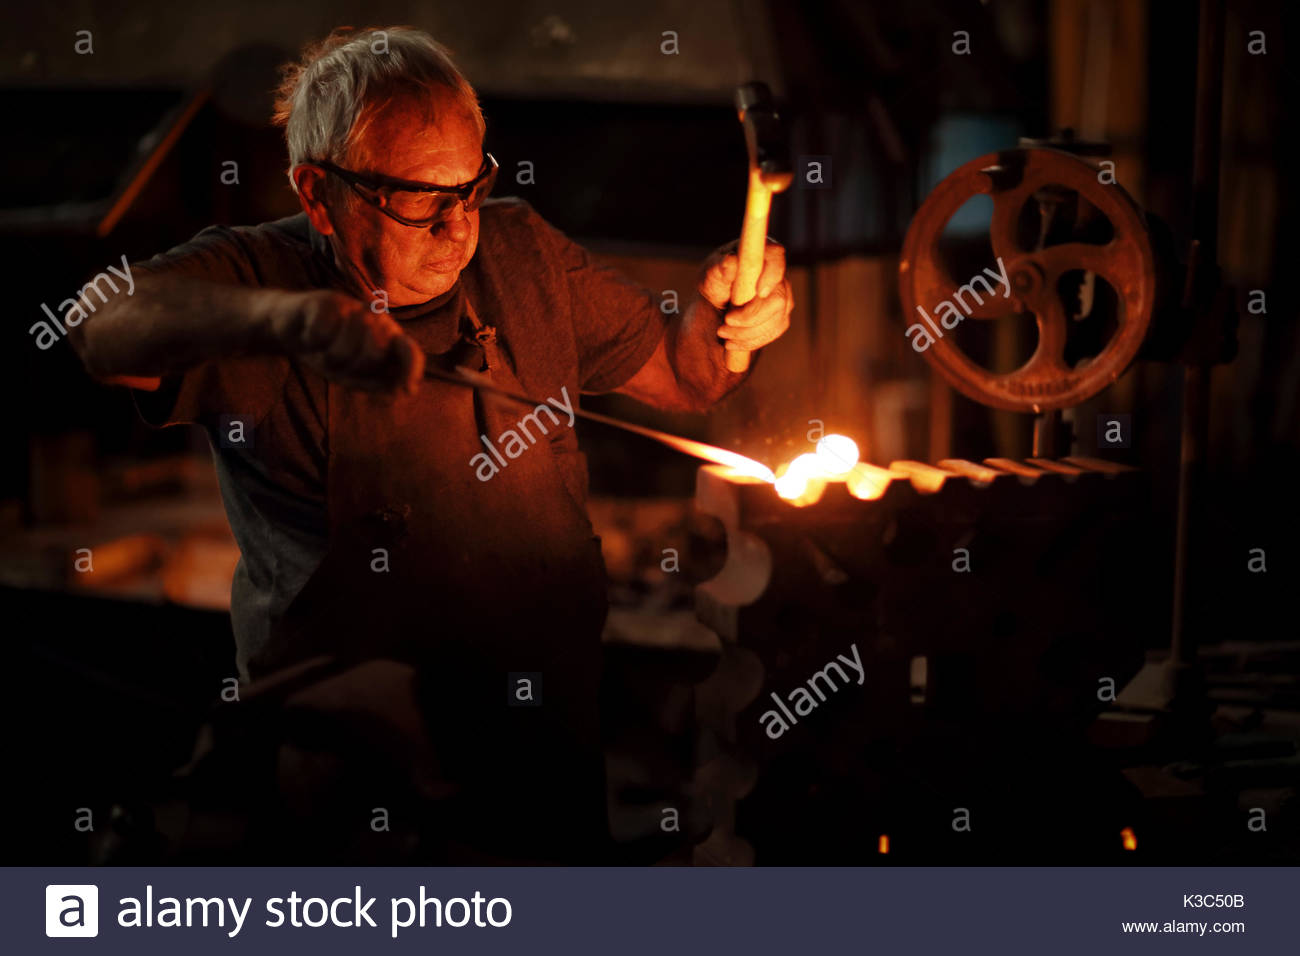 Authentic Old-Fashioned Blacksmith forging red hot molten iron with hammer in his old workshop - Stock Image